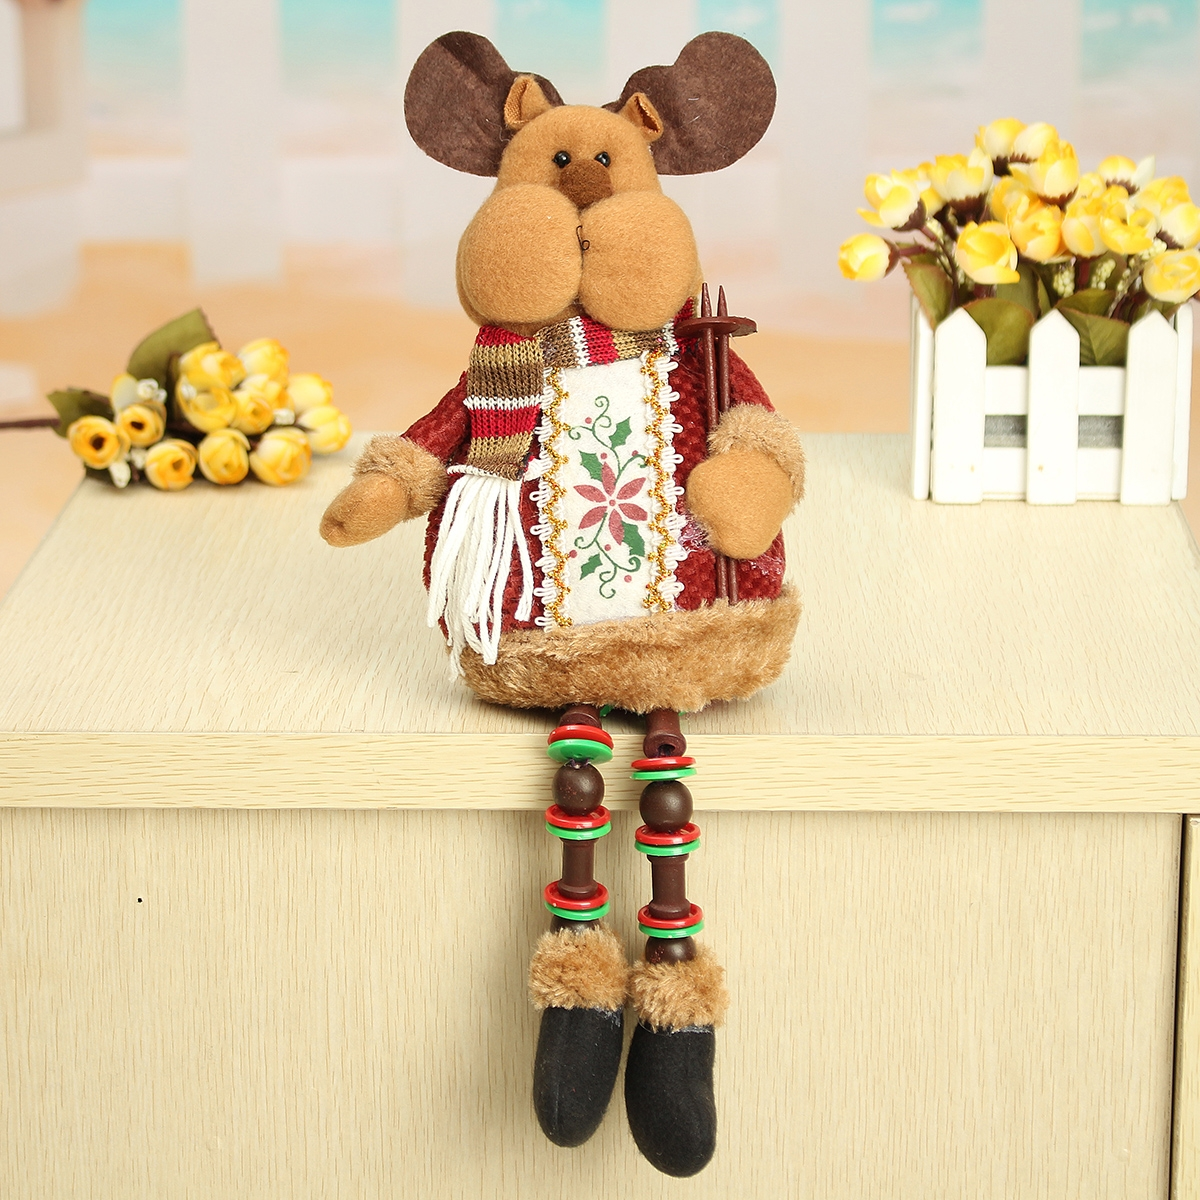 Christmas Home Decorations Sitting Cute Deer Ornament Flannel Toy Gift